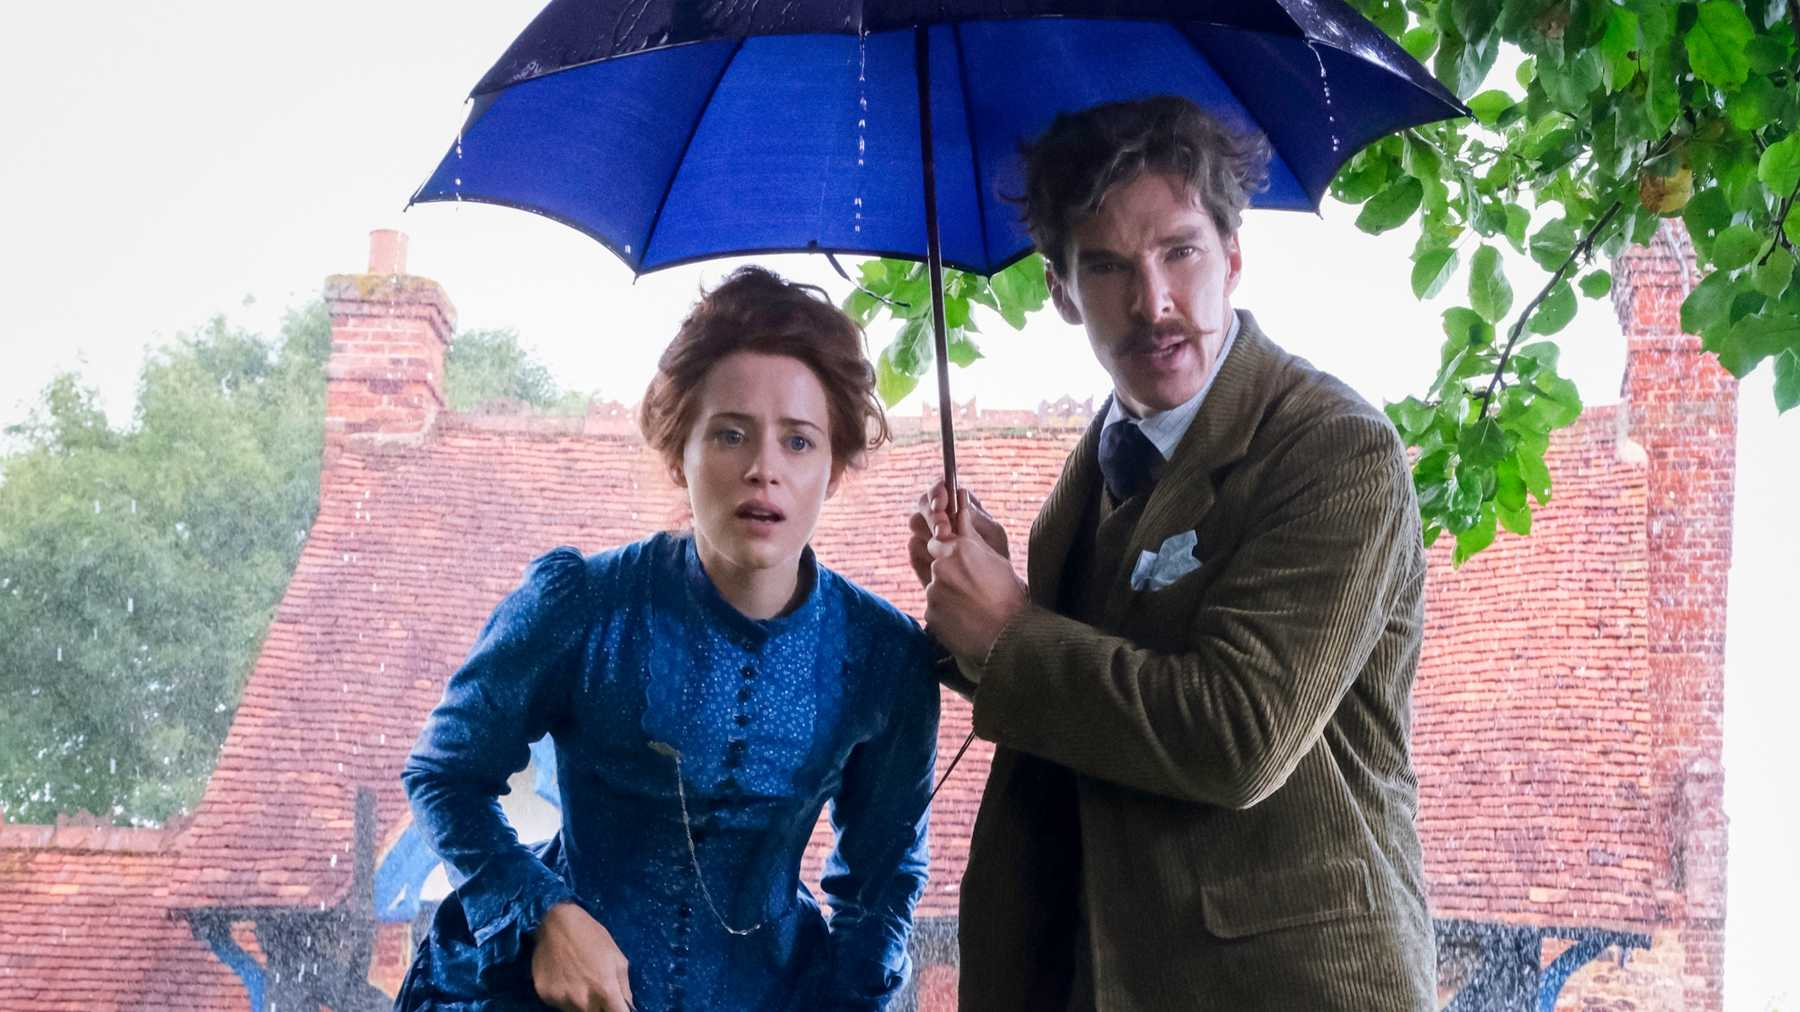 Claire Foy and Benedict Cumberbatch In Louis Wain